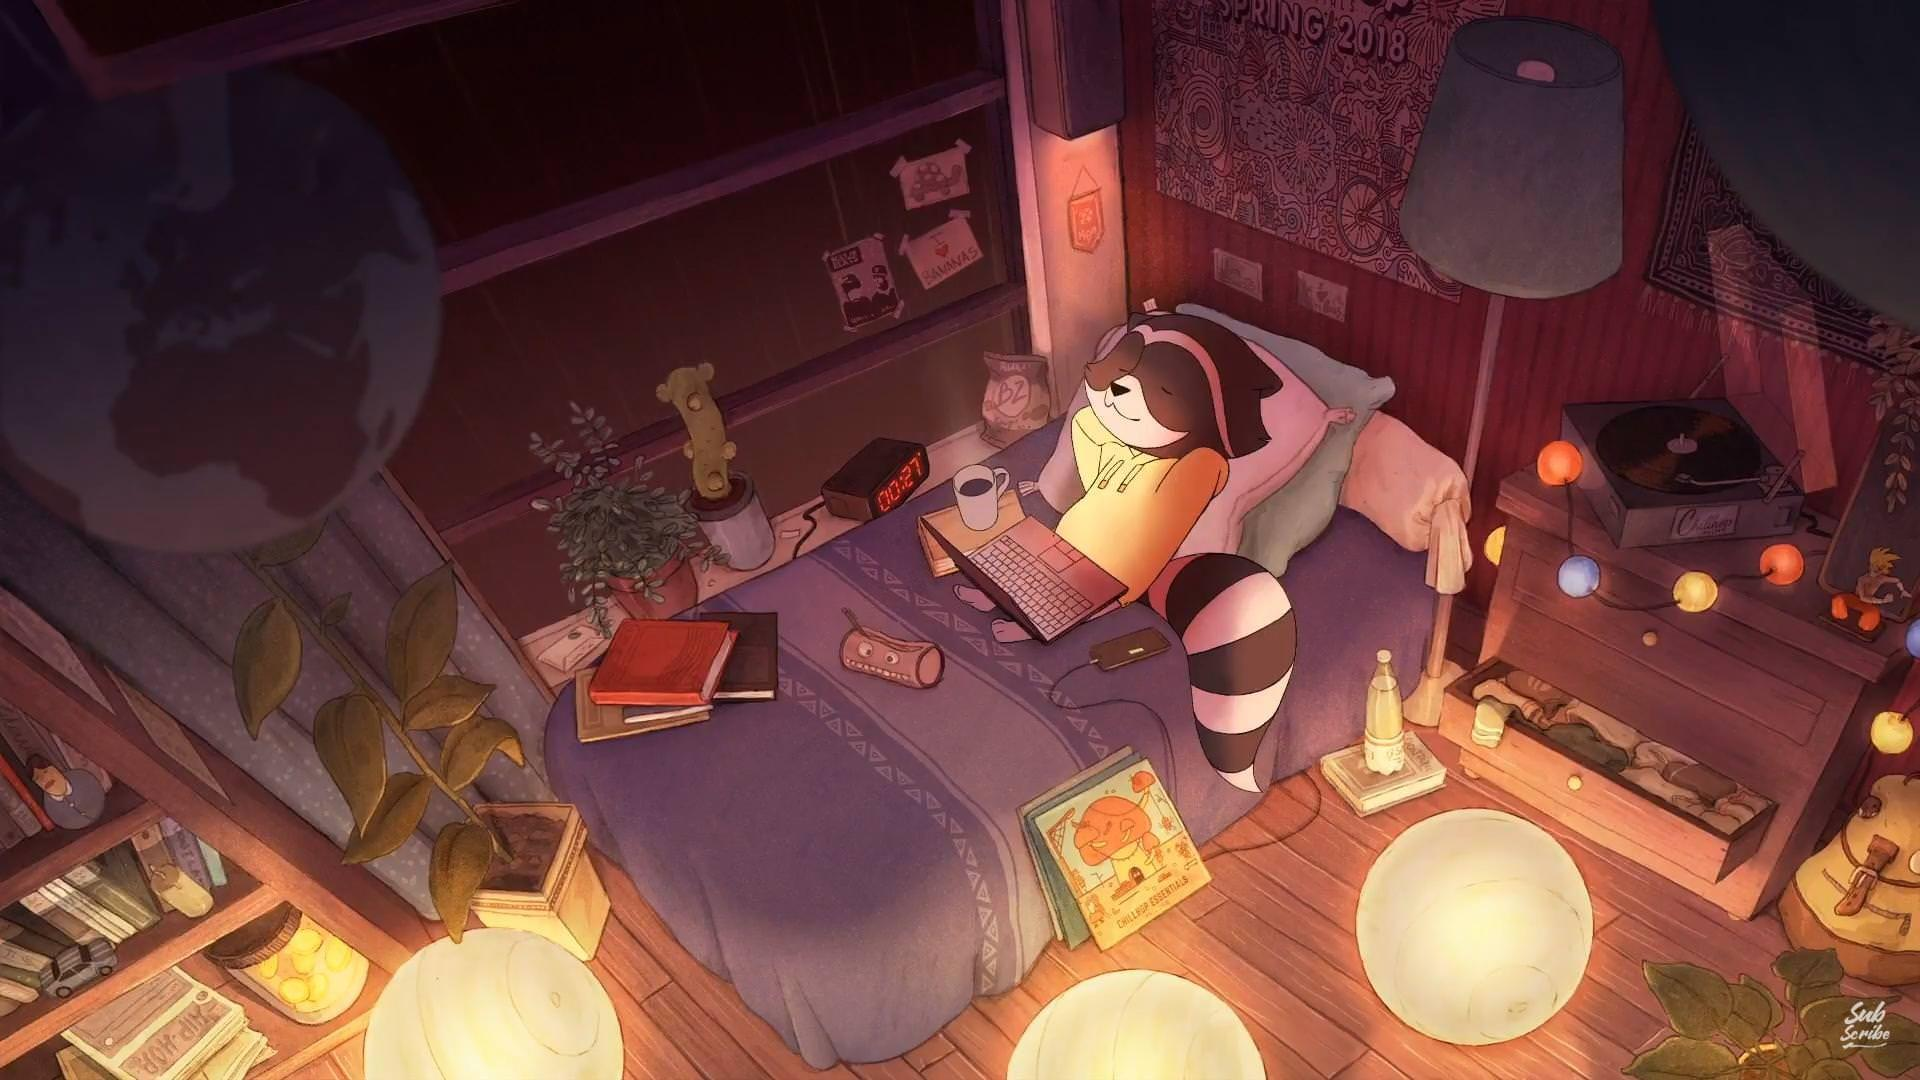 Anime Lo Fi Wallpapers - Wallpaper Cave